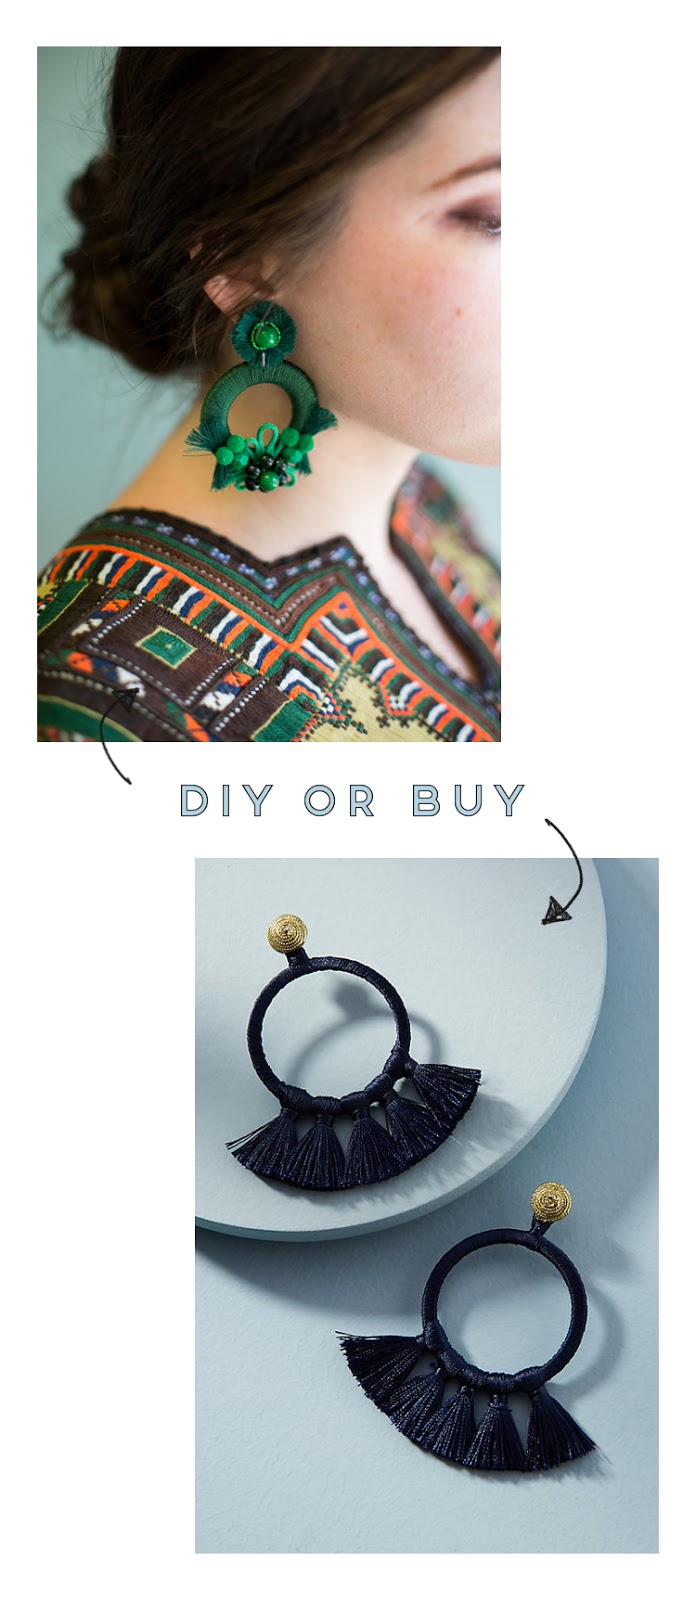 DIY OR BUY - STATEMENT EARRINGS. | Gathering Beauty